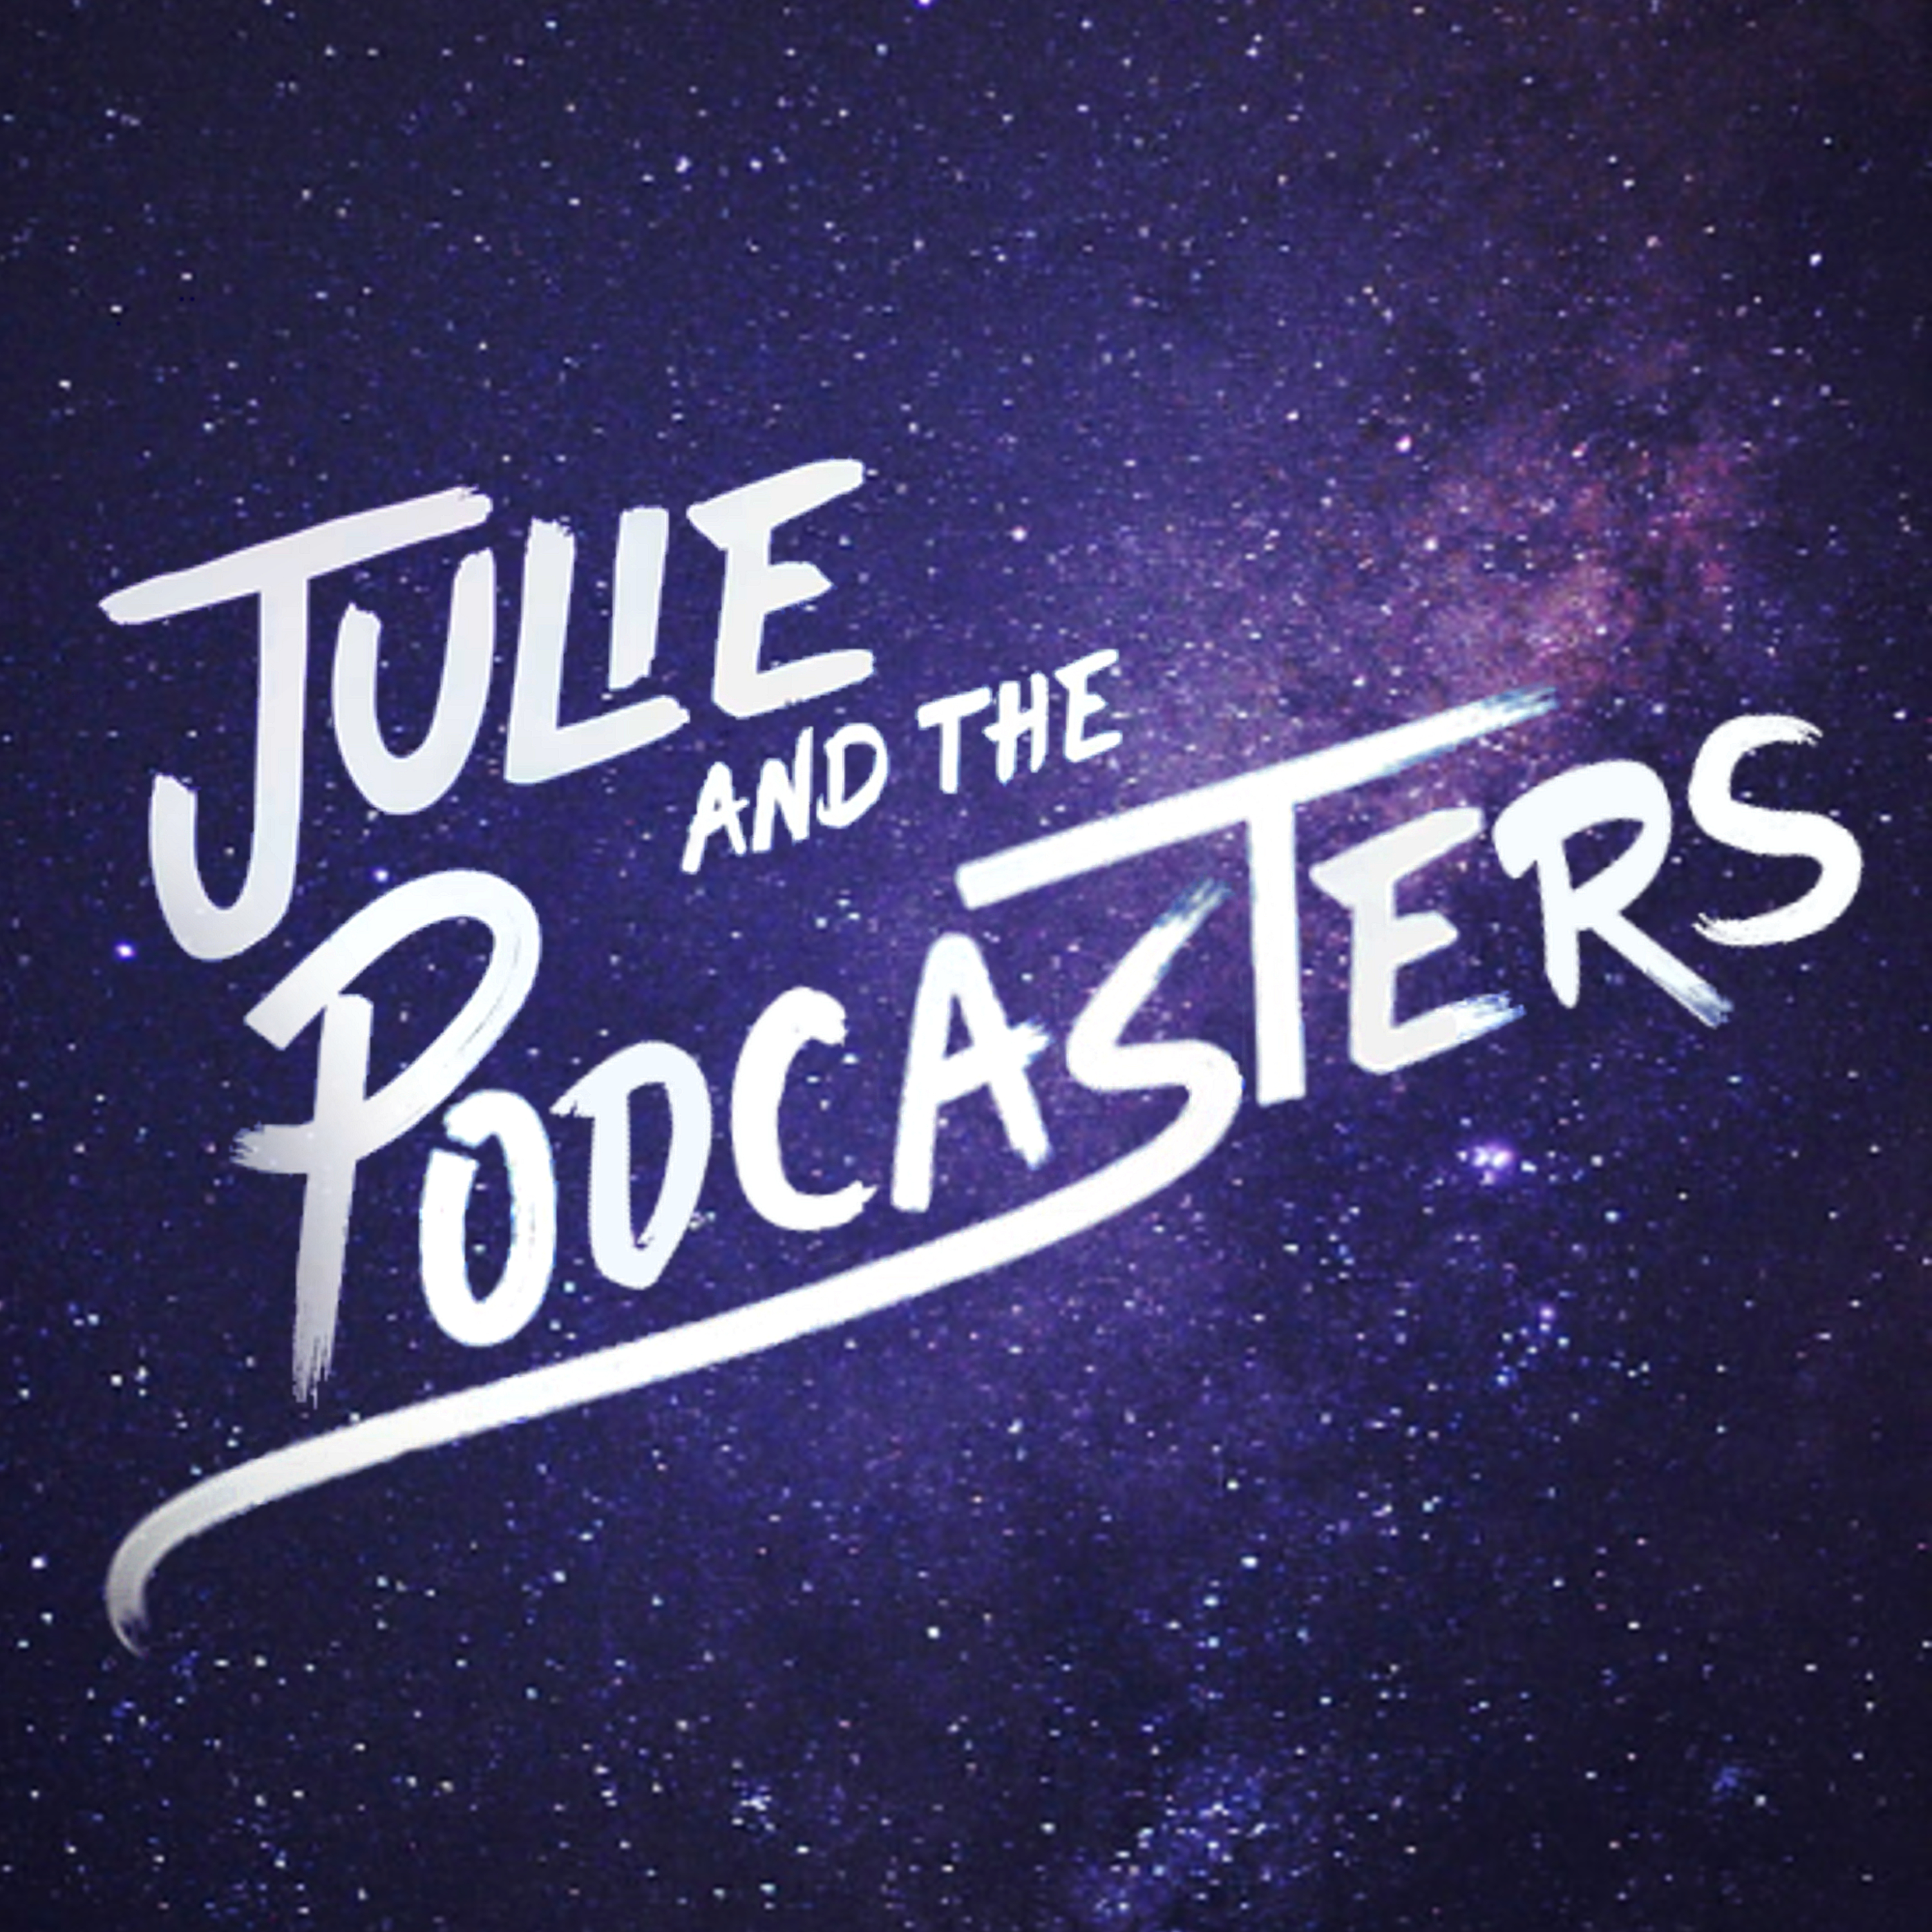 Julie and the Podcasters